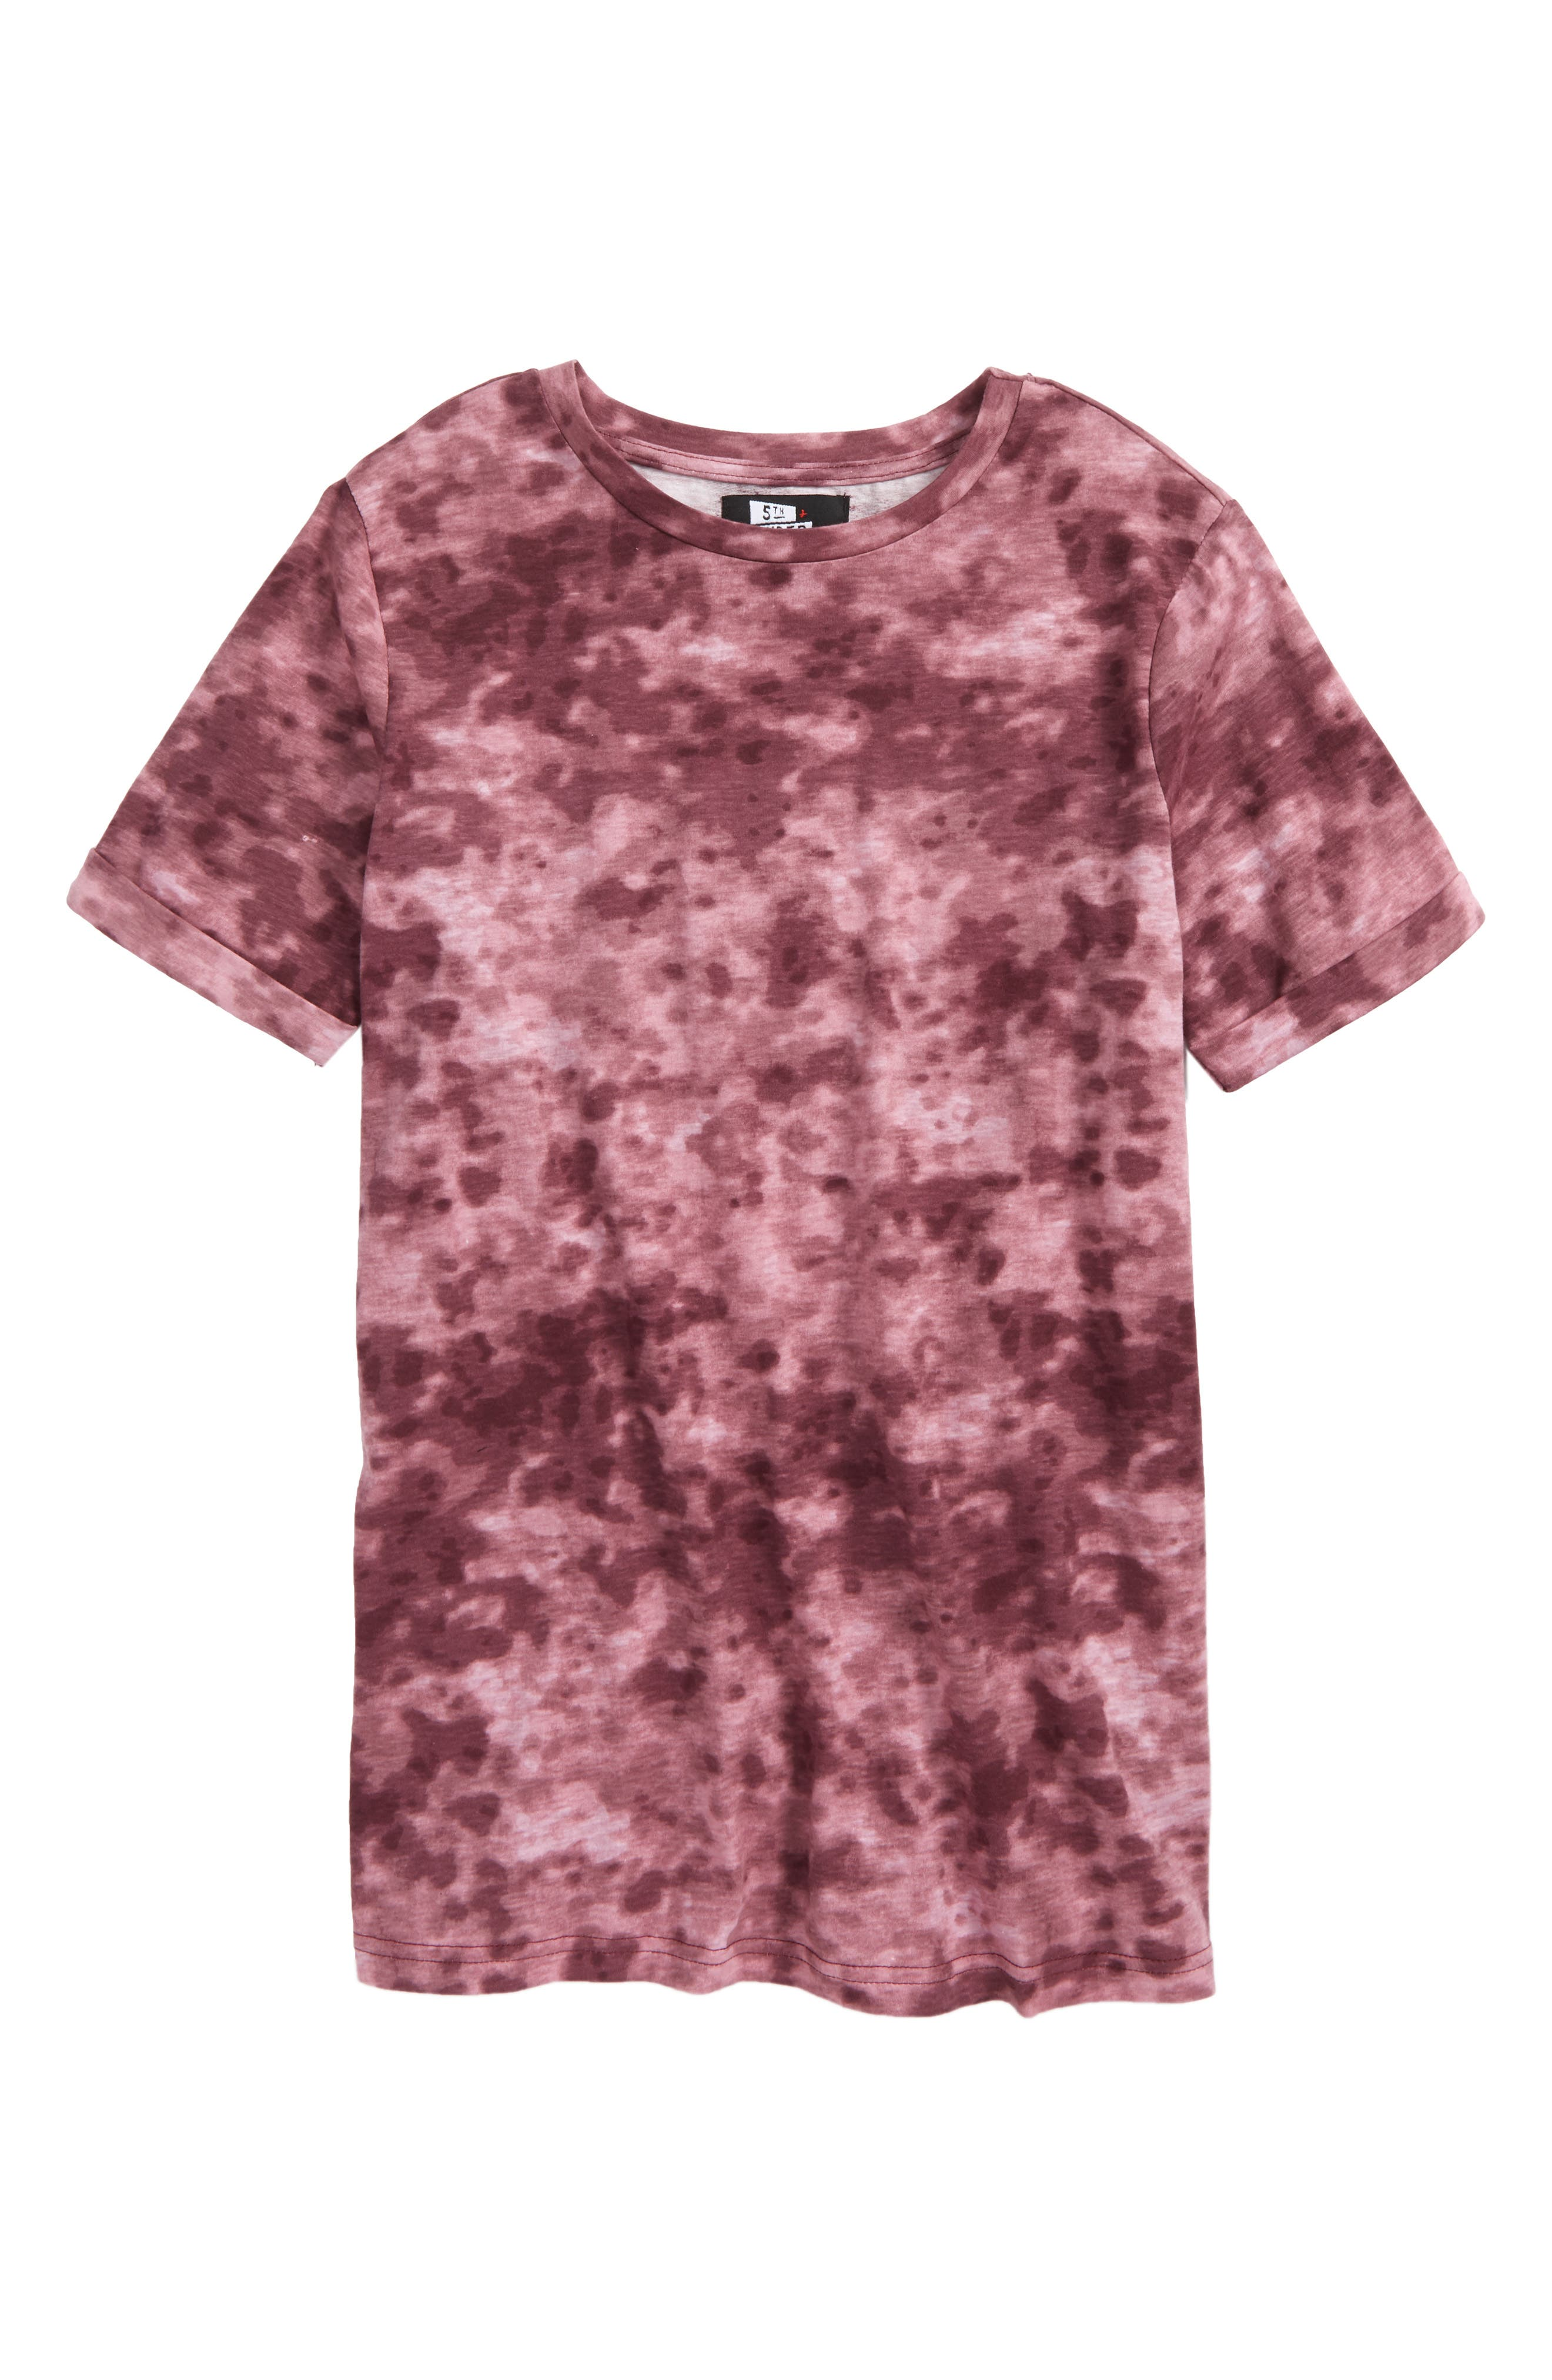 Rolled Cuff T-Shirt,                             Main thumbnail 1, color,                             BURGUNDY SNOW WASH PRINT